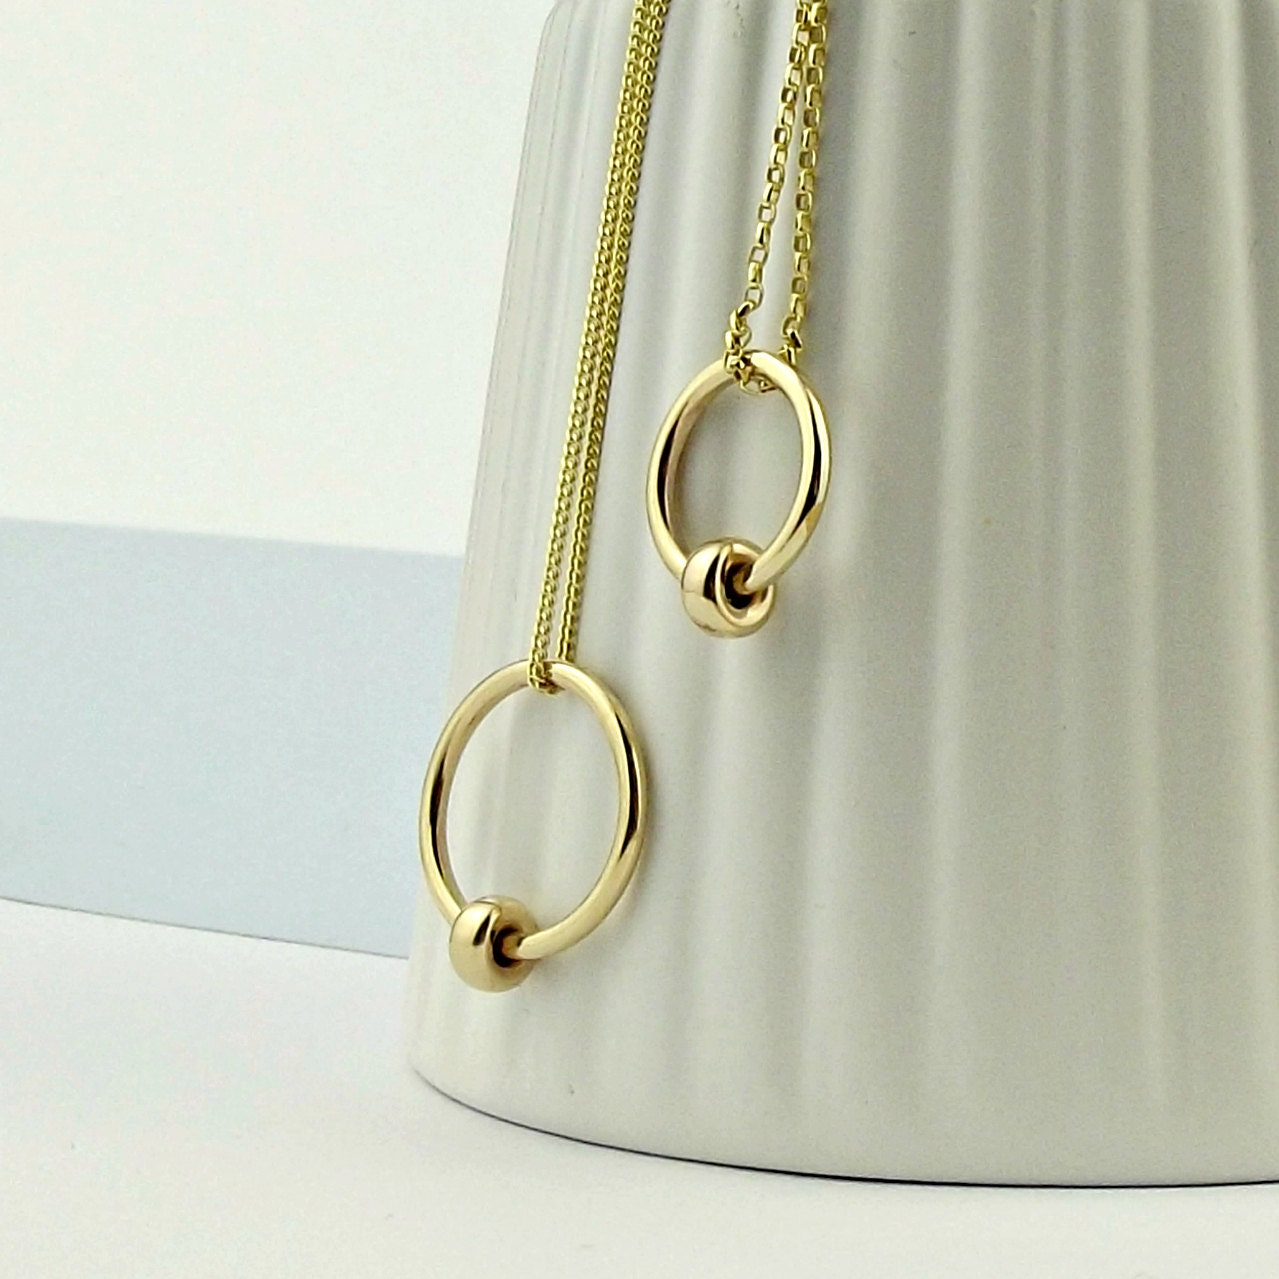 jewelry s name img piccola necklace ring gold simple products personalized with birthdate and mothers washer mother